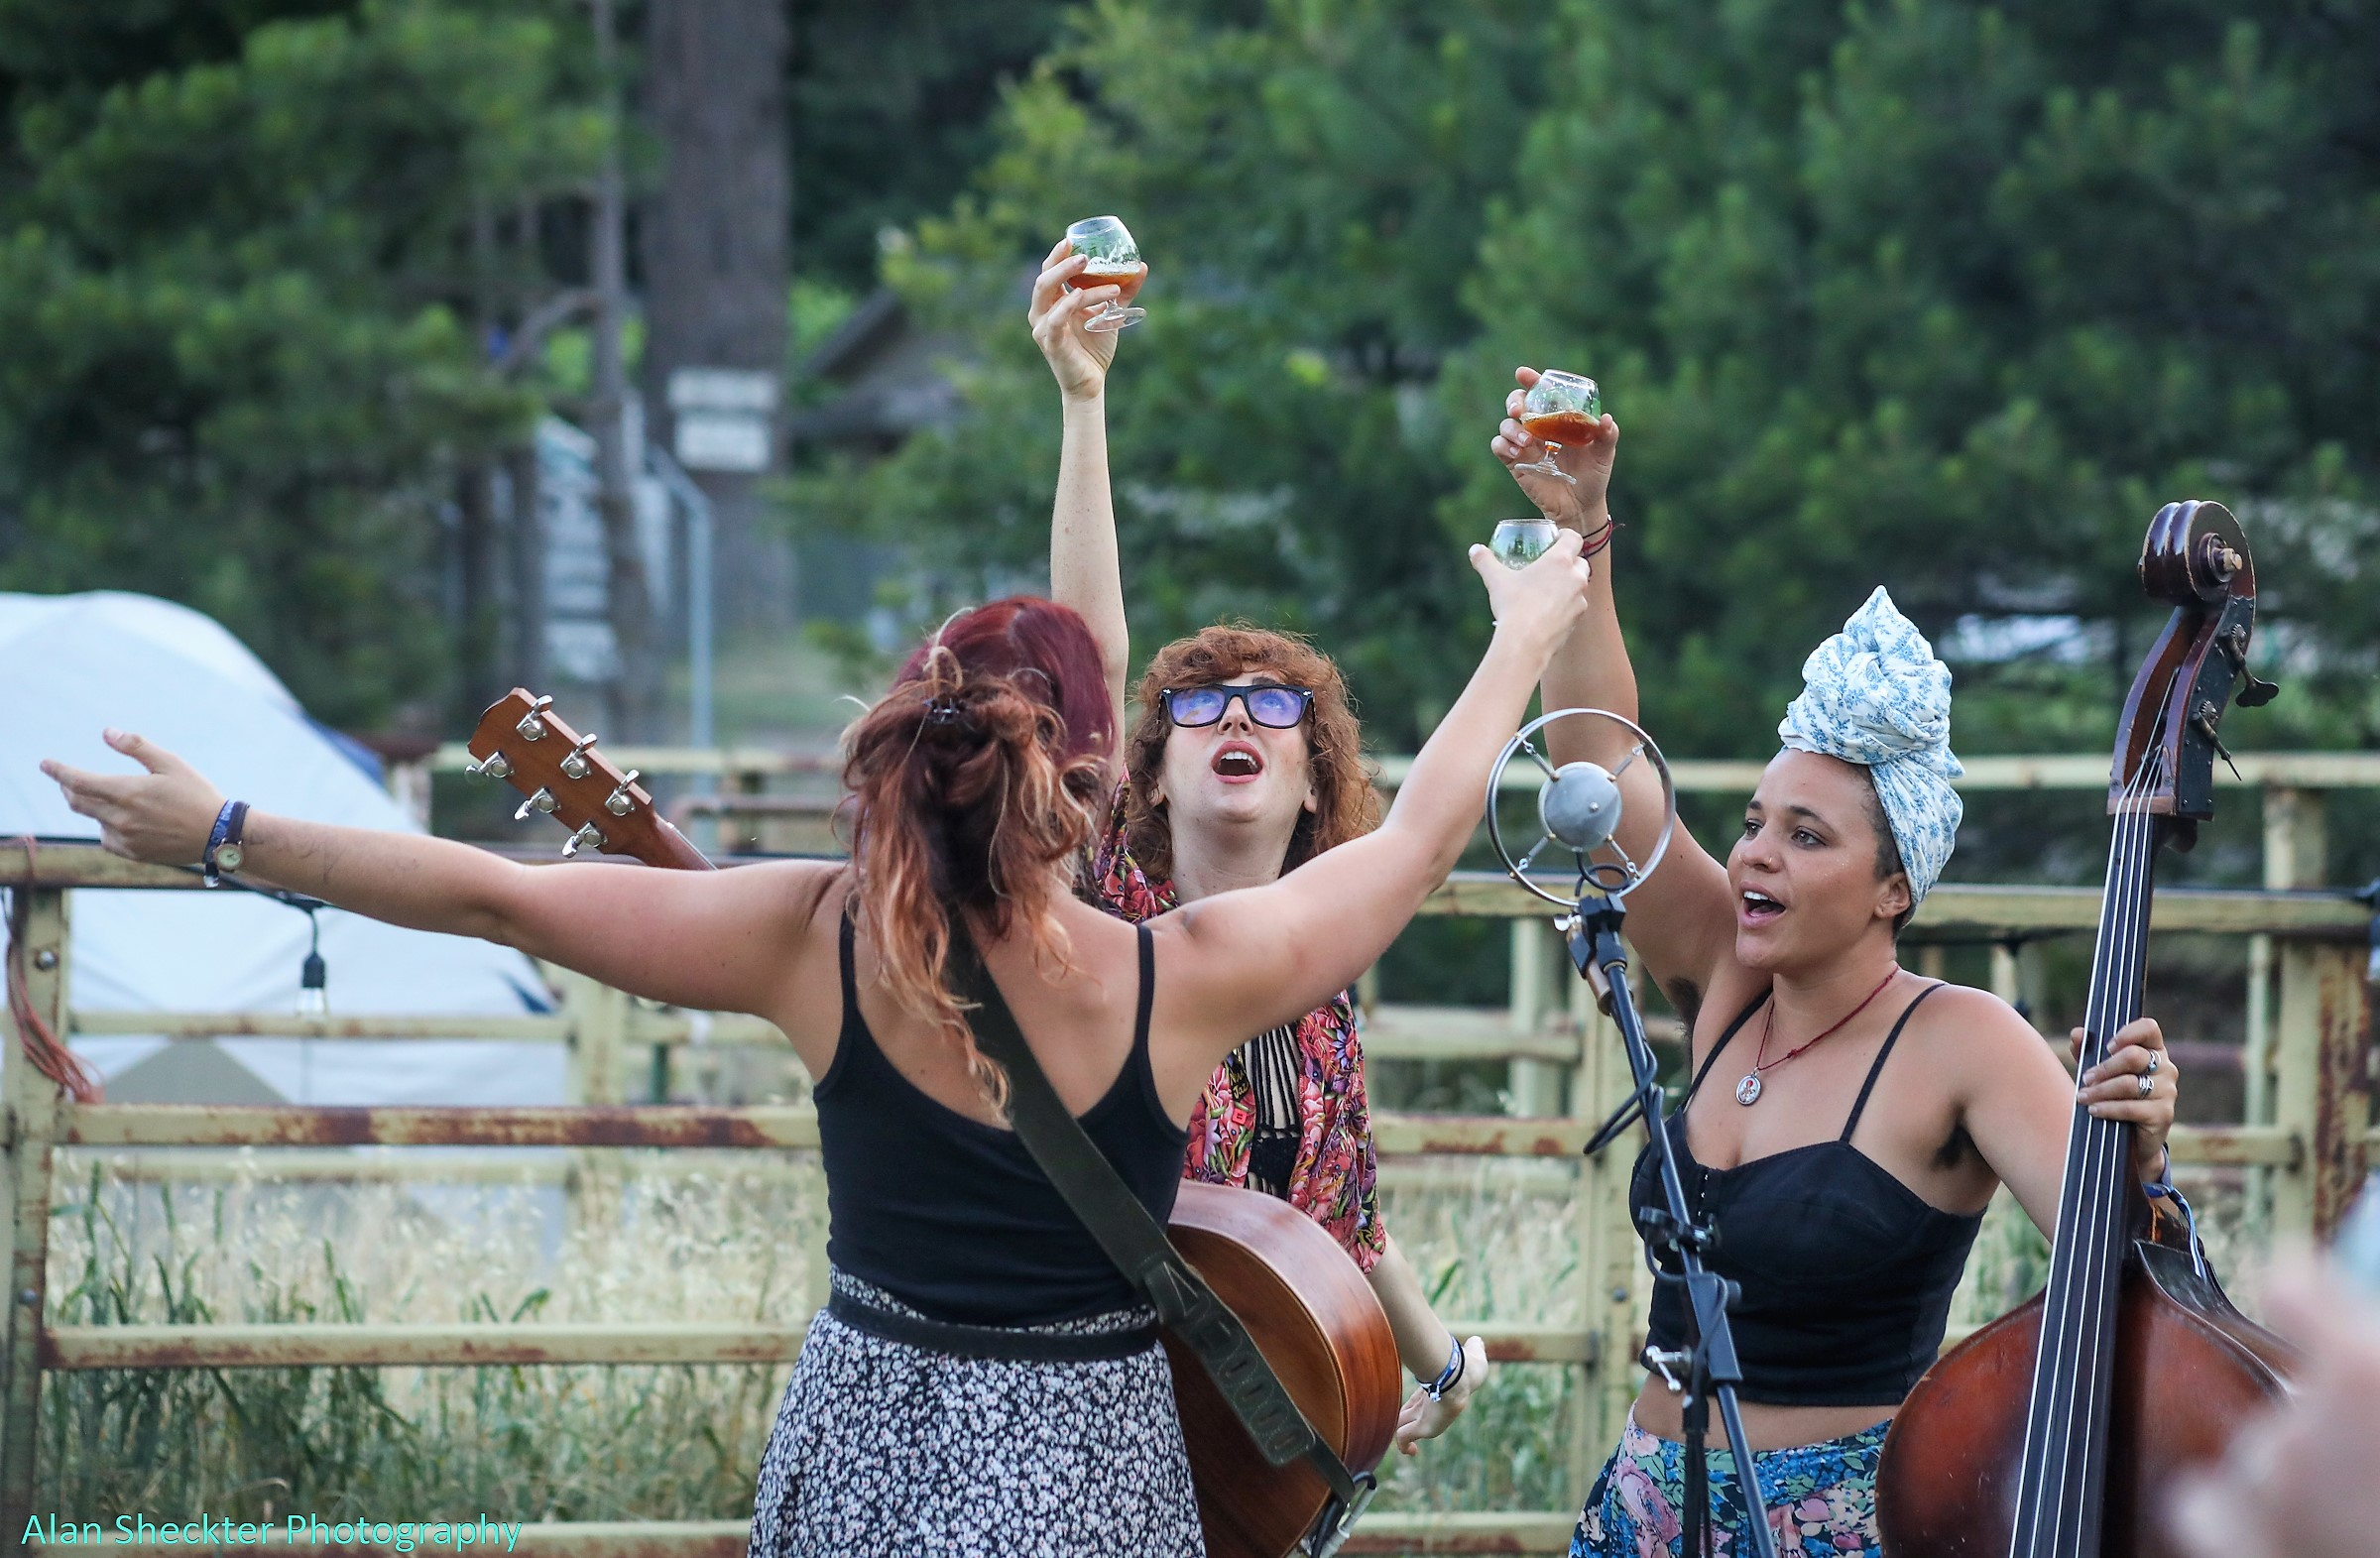 The Rainbow Girls raise their ales to the sky at Sierra Nevada Brewery's Camp Pale Ale